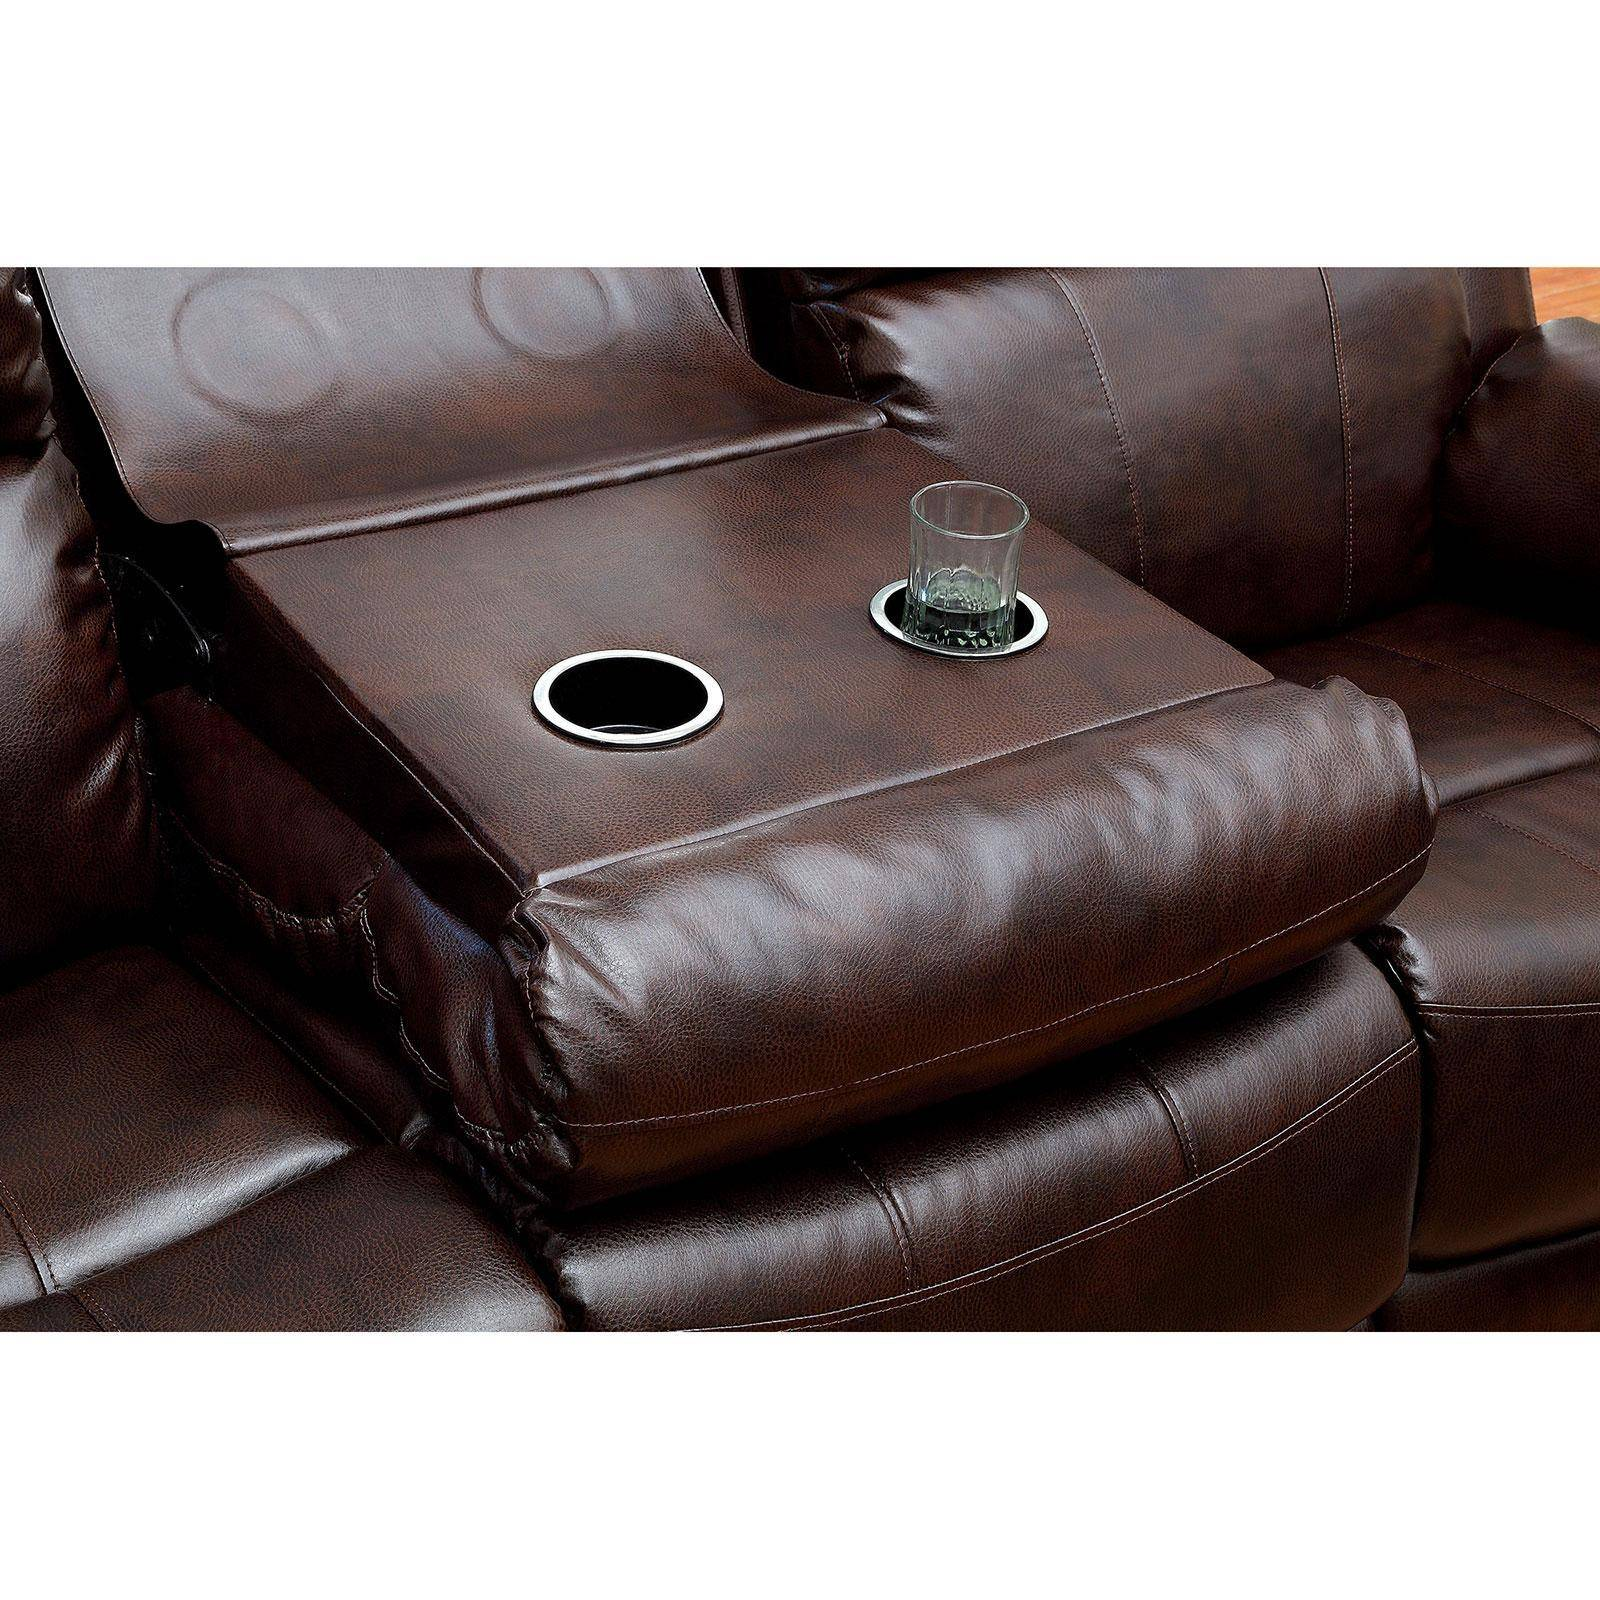 Wondrous Transitional Brown Bonded Leather Upholstery Reclining Sofa Hughes Foa Group Pdpeps Interior Chair Design Pdpepsorg